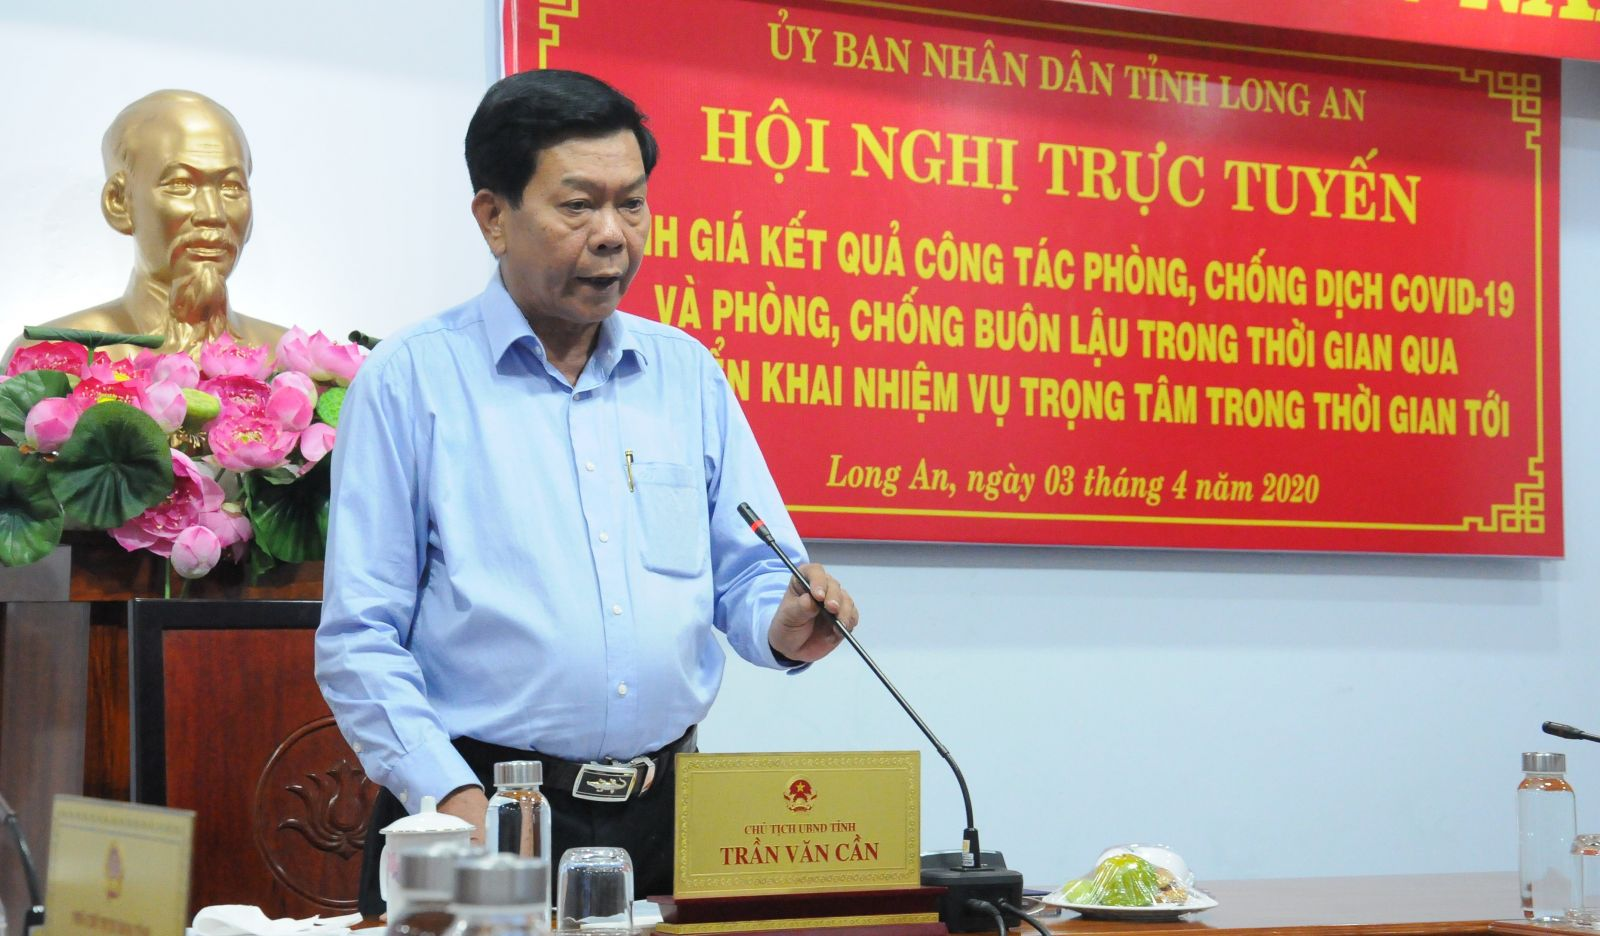 Deputy Secretary of the Provincial Party Committee, Chairman of Long An People's Committee - Tran Van Can deliveres a speech at the conference